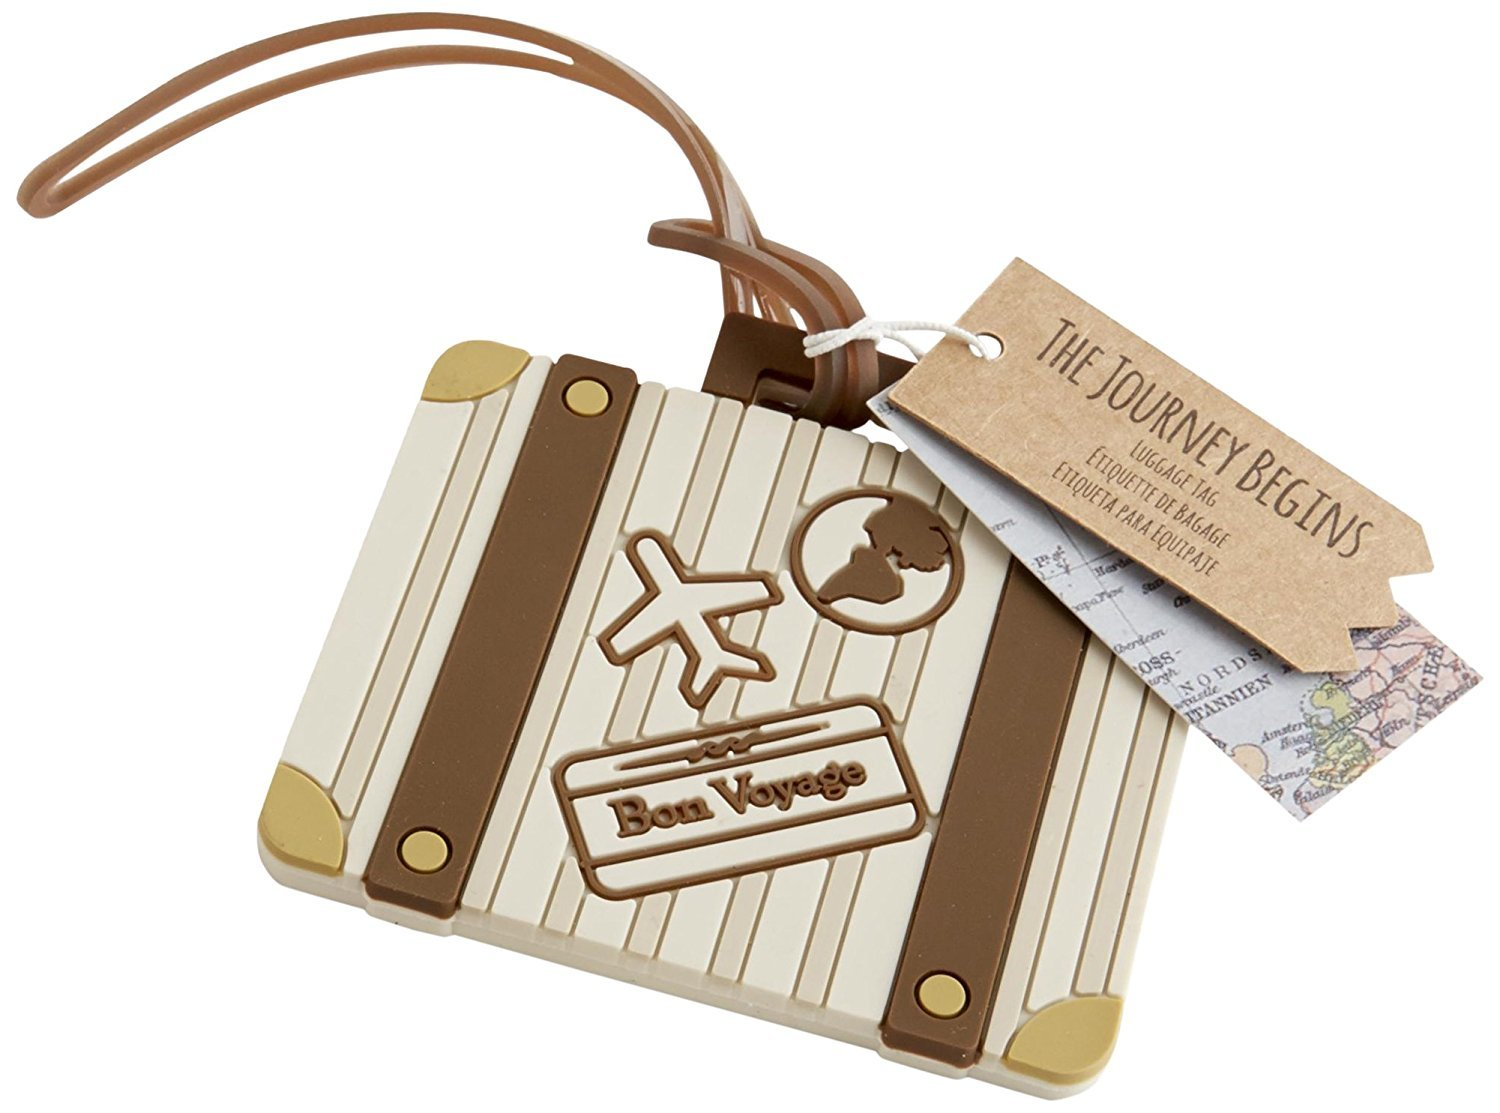 Let the Journey Begin Vintage Suitcase Luggage Tag by Kateaspen